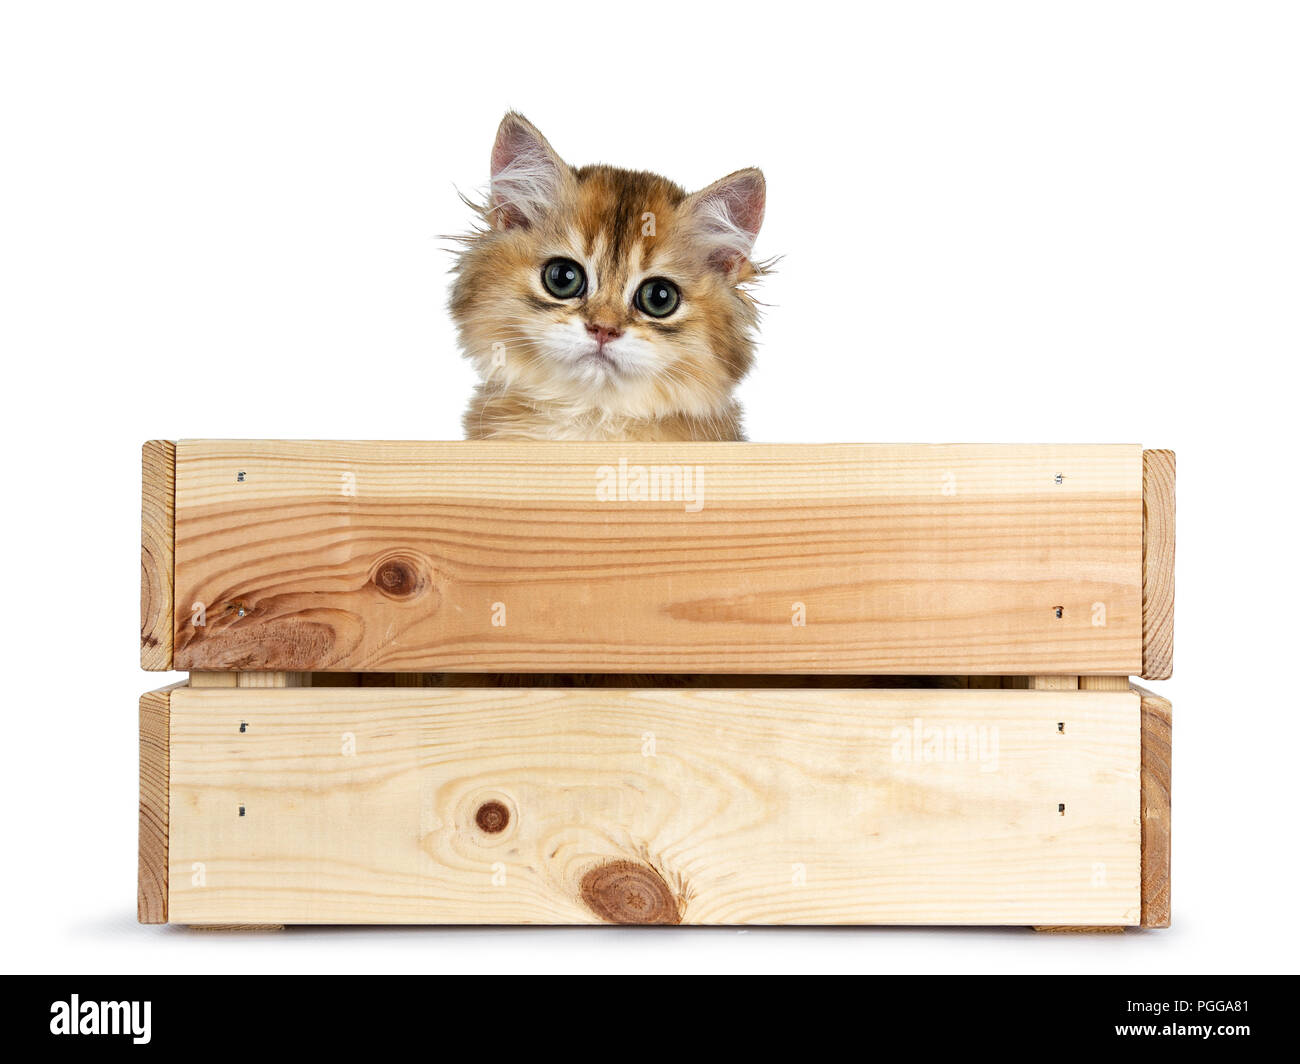 Super sweet golden British Longhair cat kitten with big green eyes, sitting in a wooden crate / box peeping out adorable over the edge straight Stock Photo